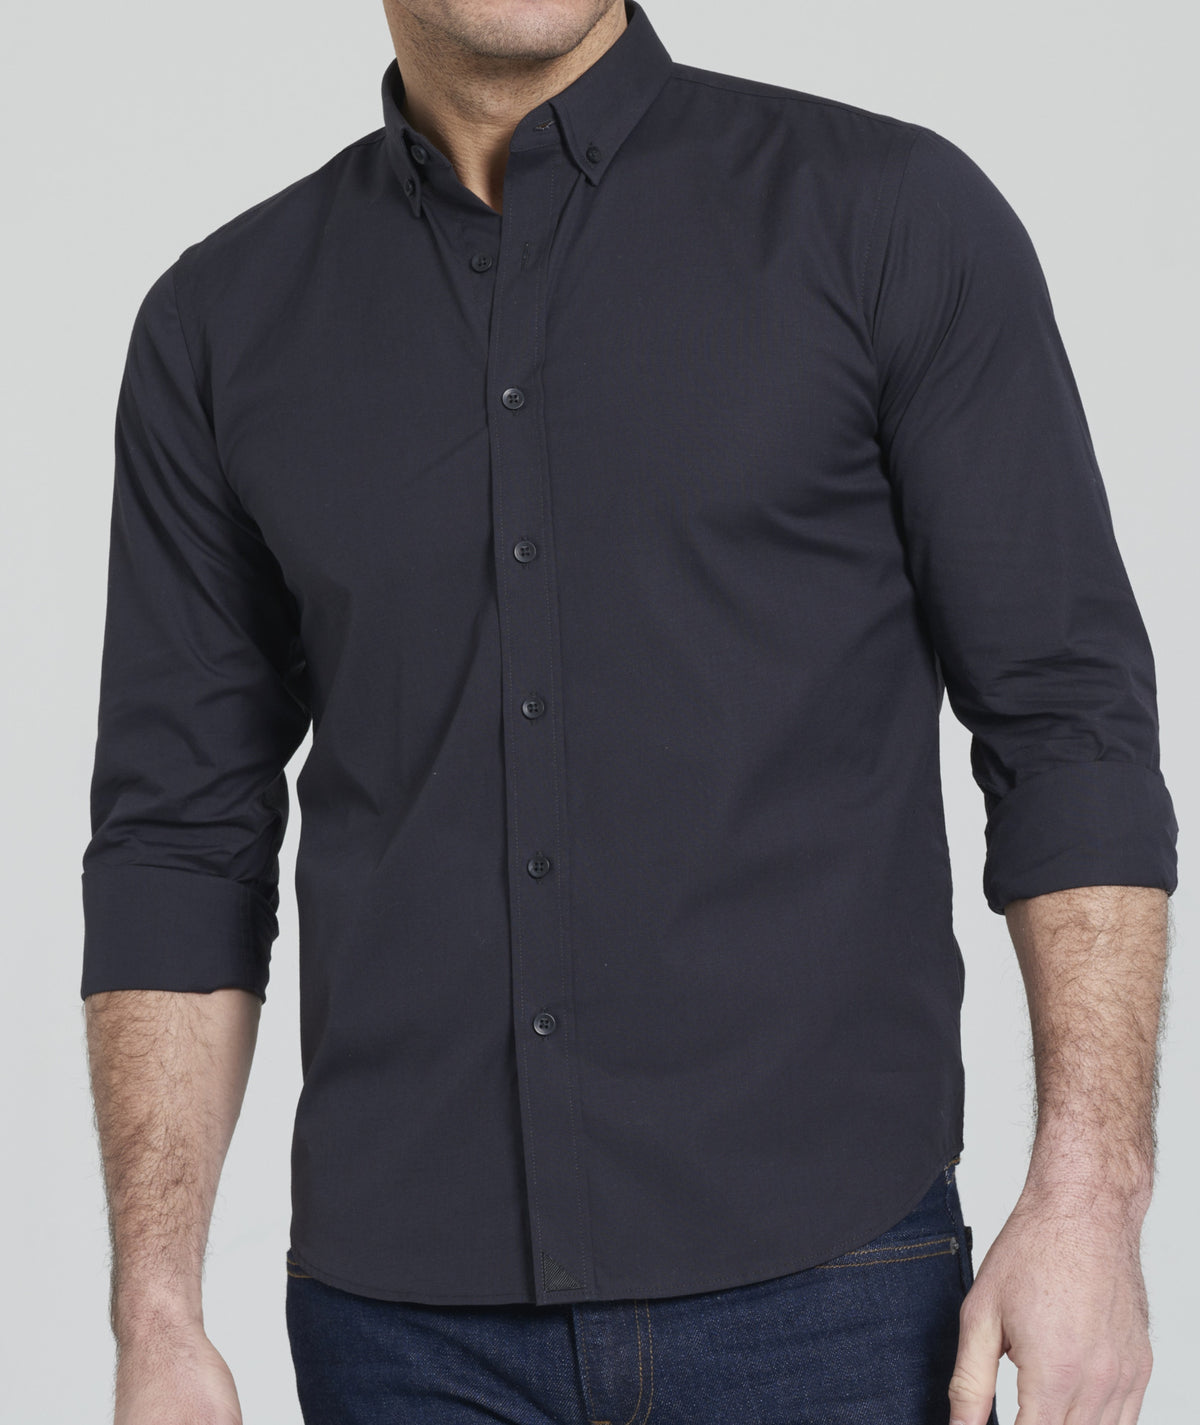 Carter With Black - Button Down Collar